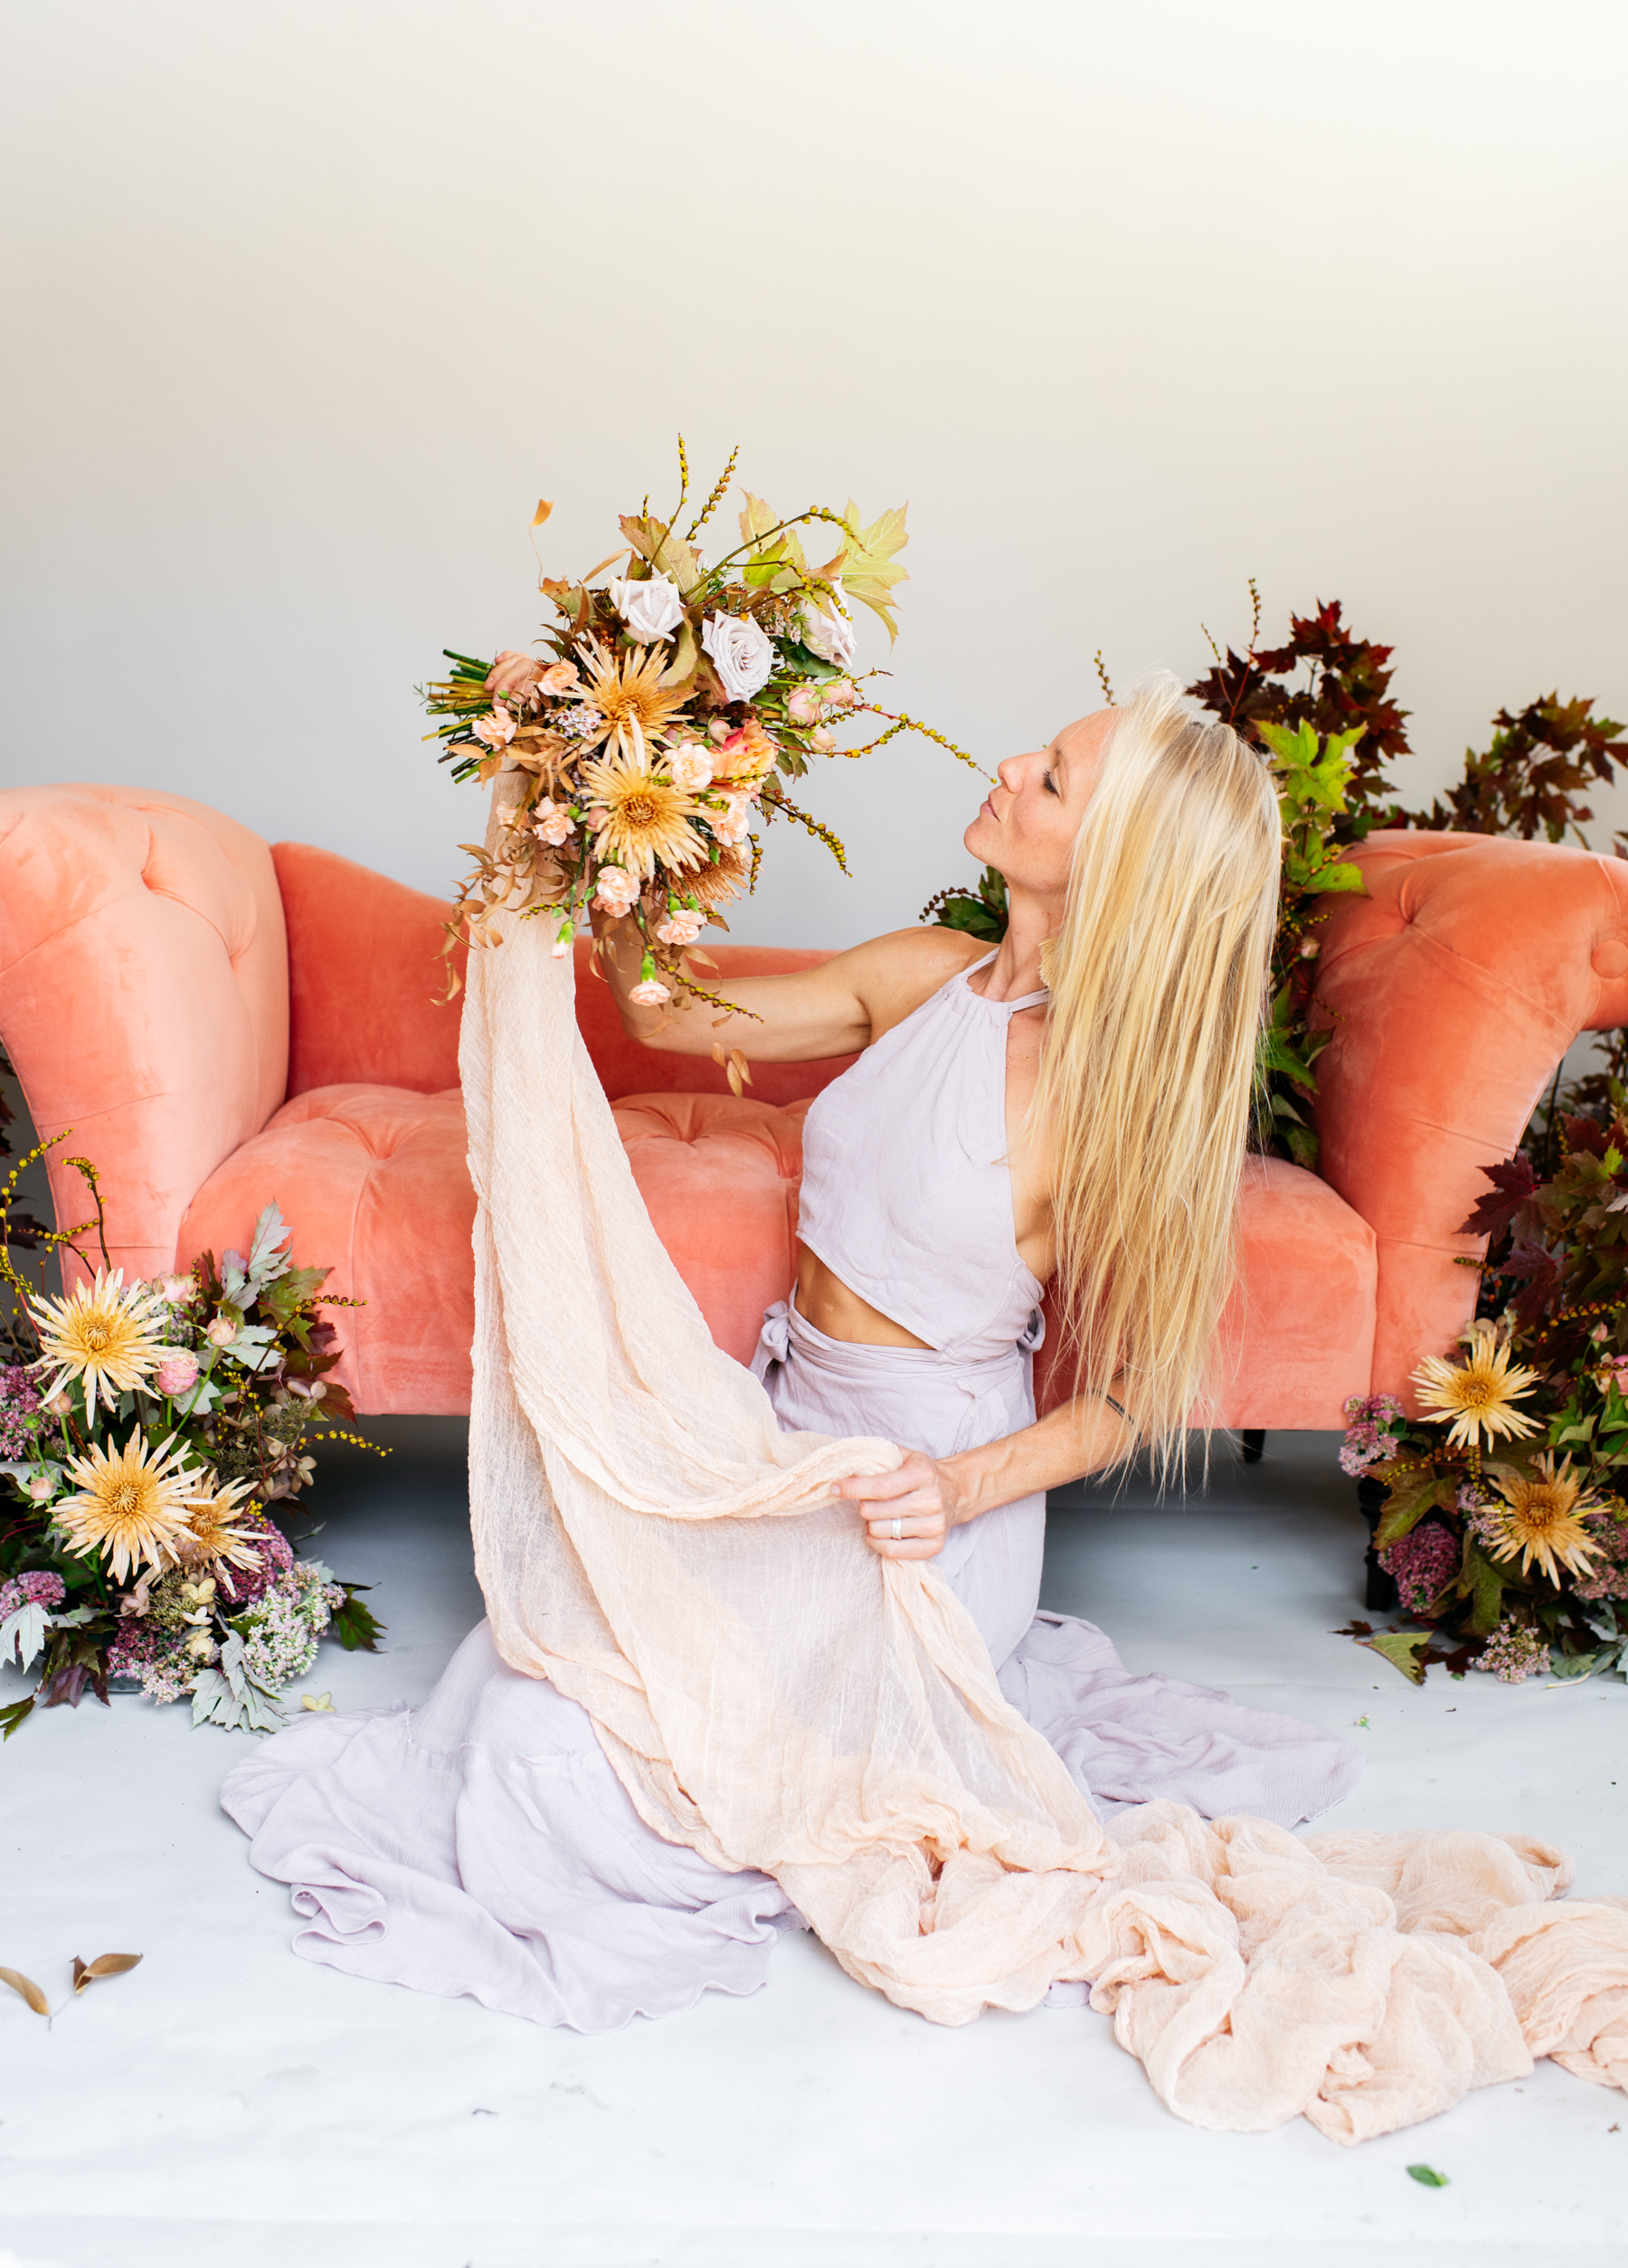 NECTAR + BLOOM | Samerica Studios Photography | autumnal floral installation with coral sofa + styling cloth by NECTAR + BLOOM